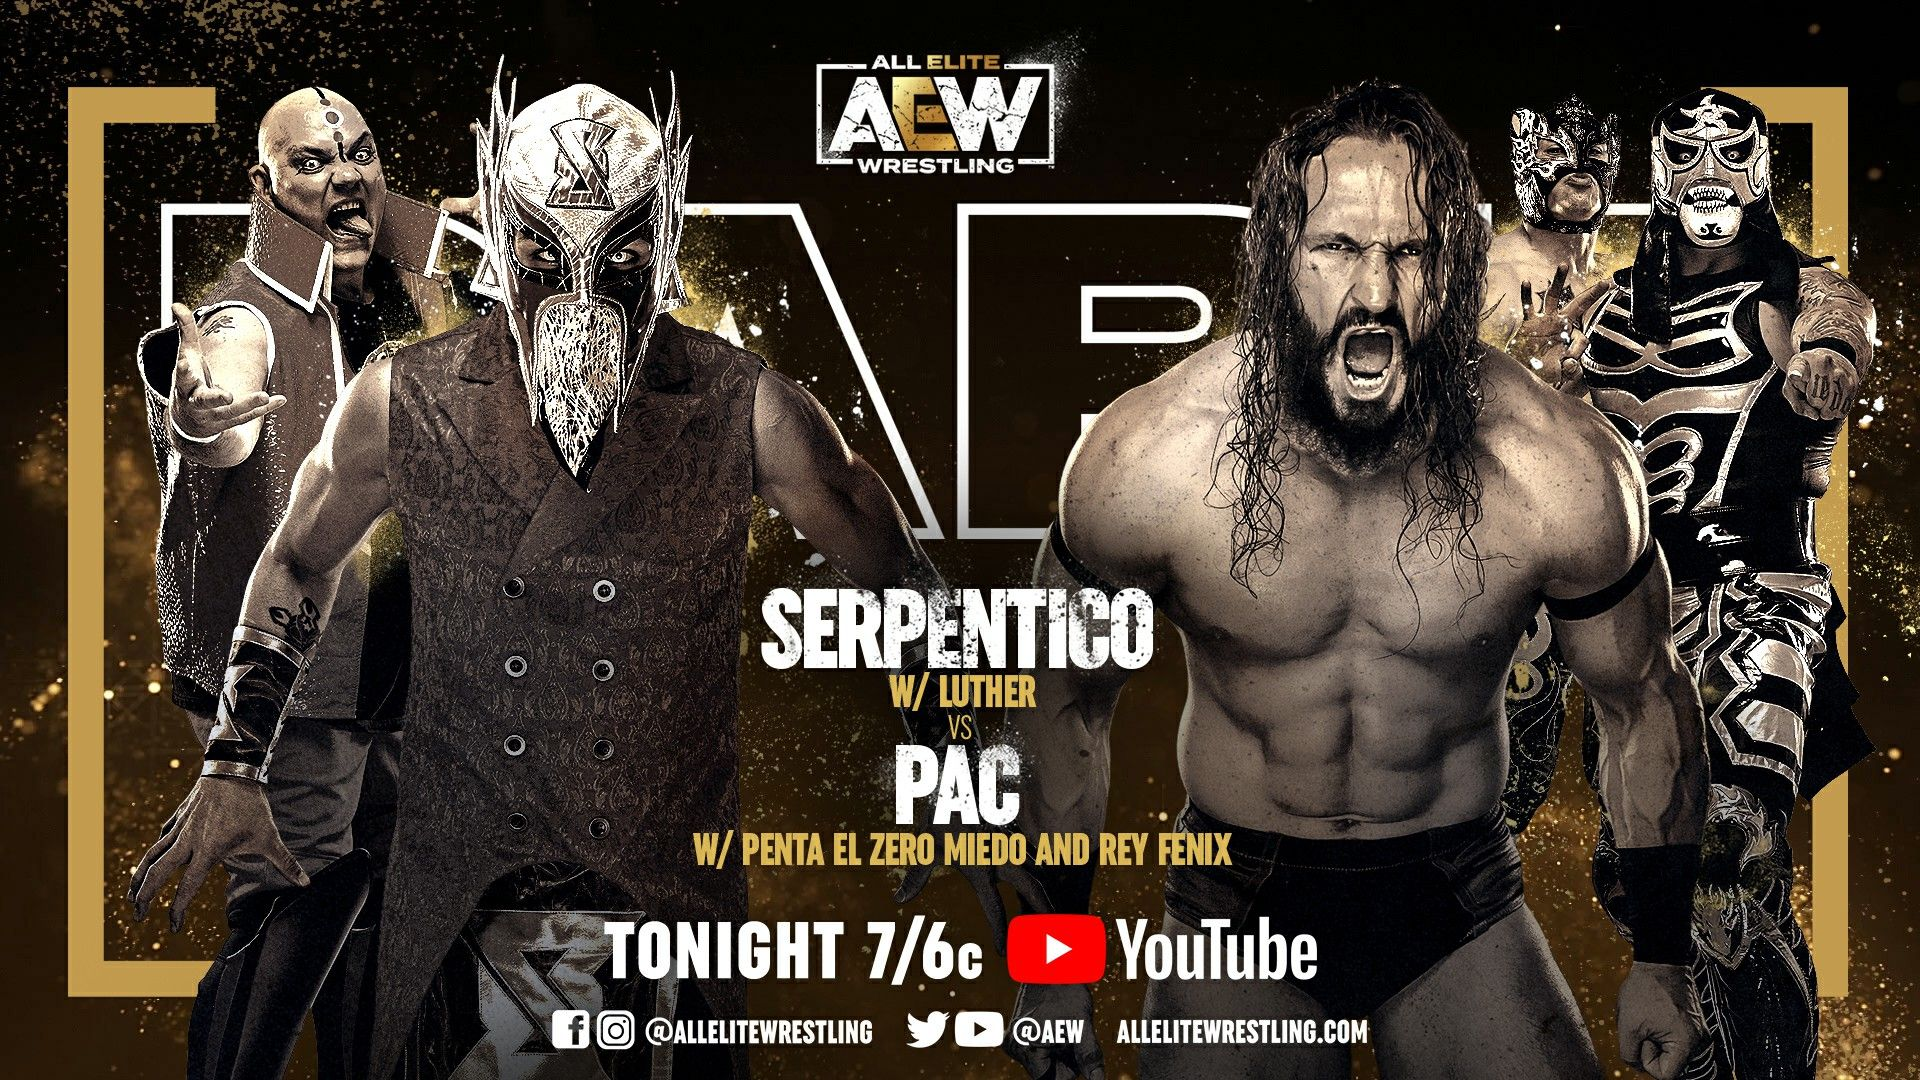 AEW Dark Results (5/4): PAC, Team Taz, Leyla Hirsch And More In Action